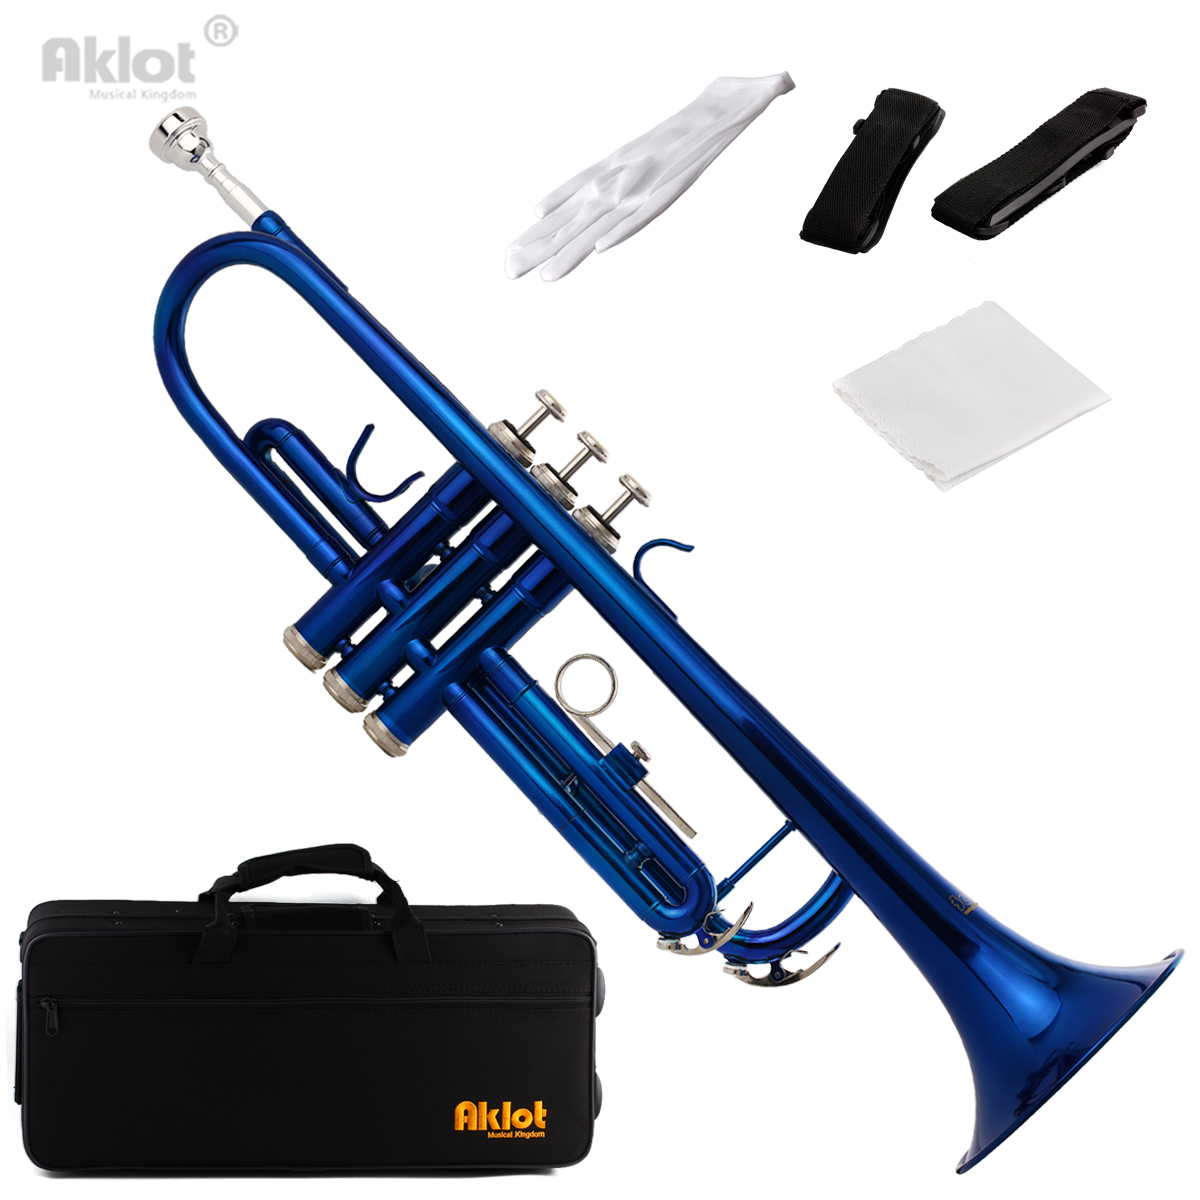 Aklot Bb B Flat Beginner Trumpet with 7C Silver Plated Mouthpiece Blue Lacquered Brass Body for Student Band